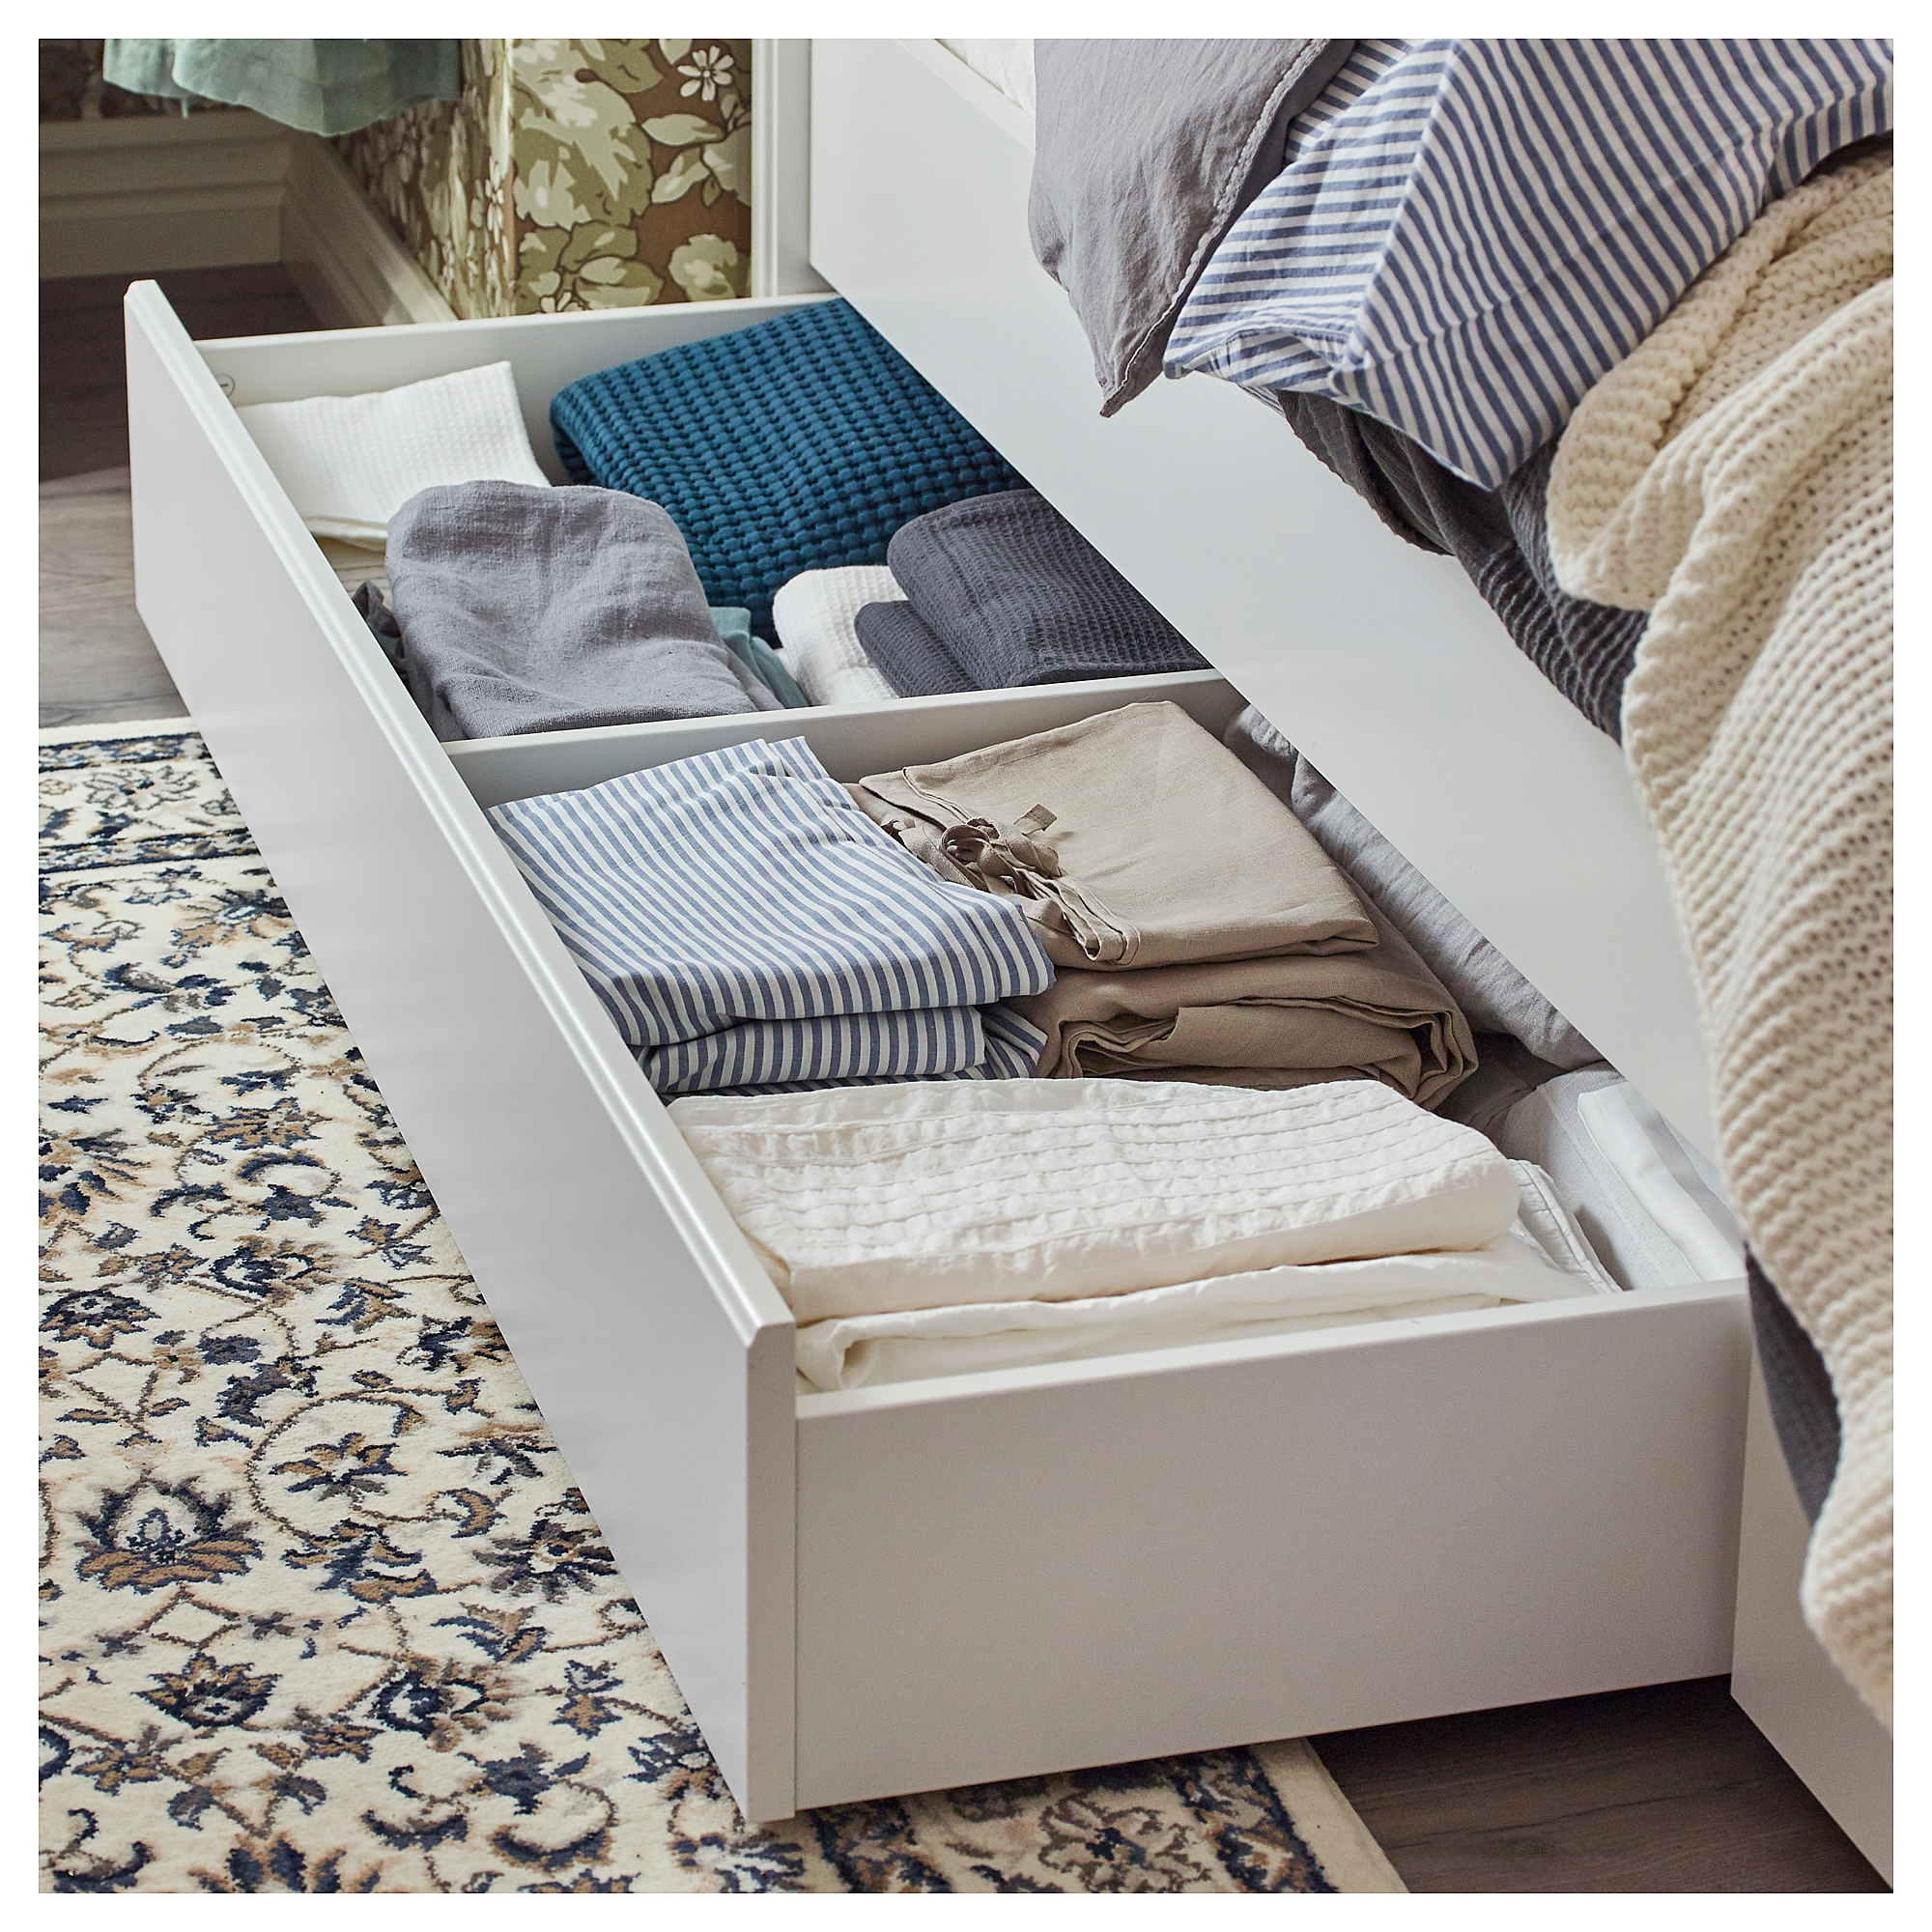 SONGESAND Bed frame with 2 storage boxes white IKEA